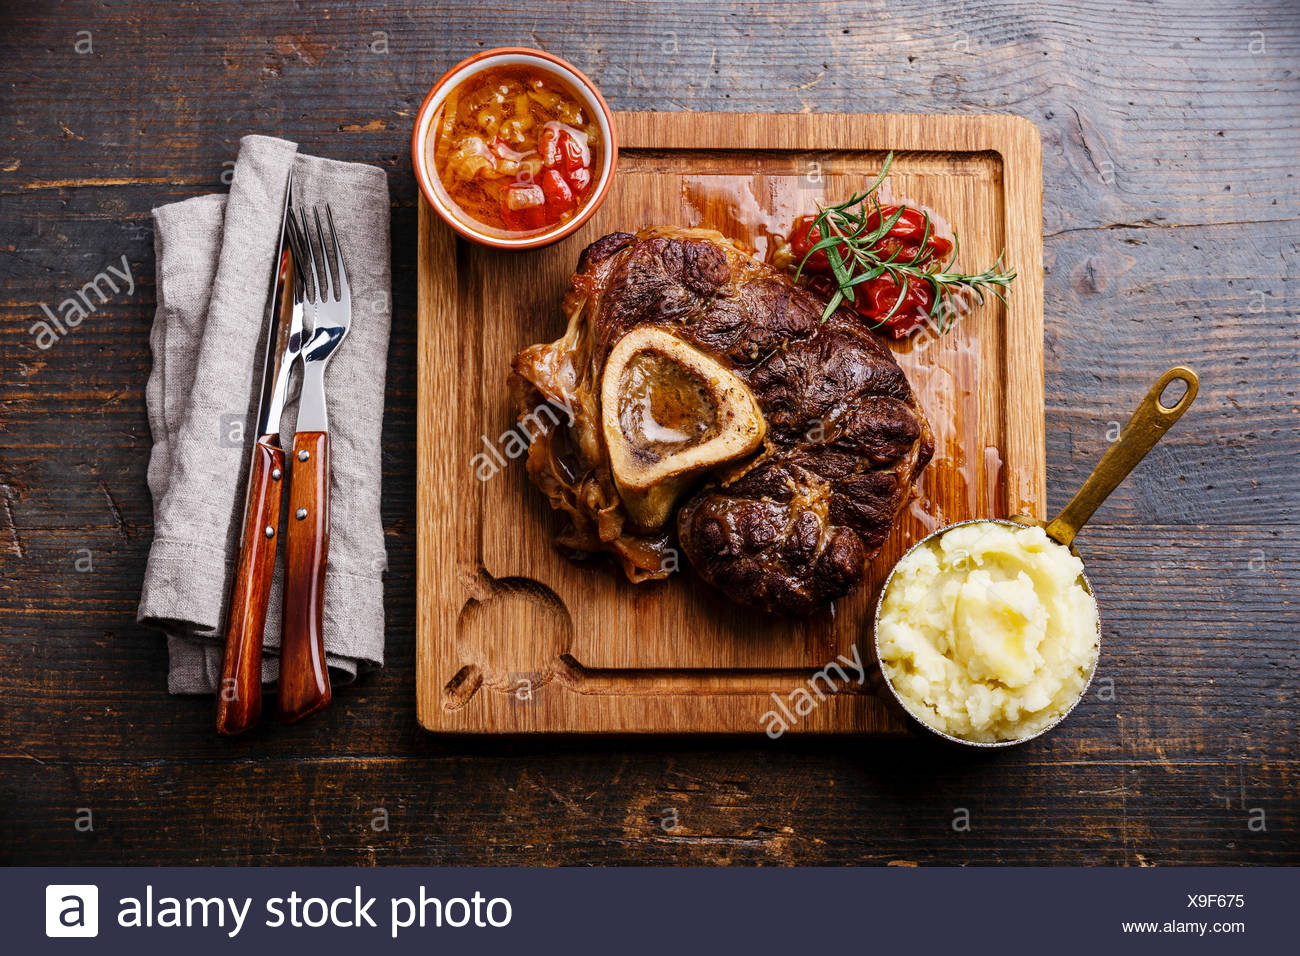 Prepared Osso buco Veal shank with tomatoes and mashed potatoes on serving board on wooden background - Stock Image